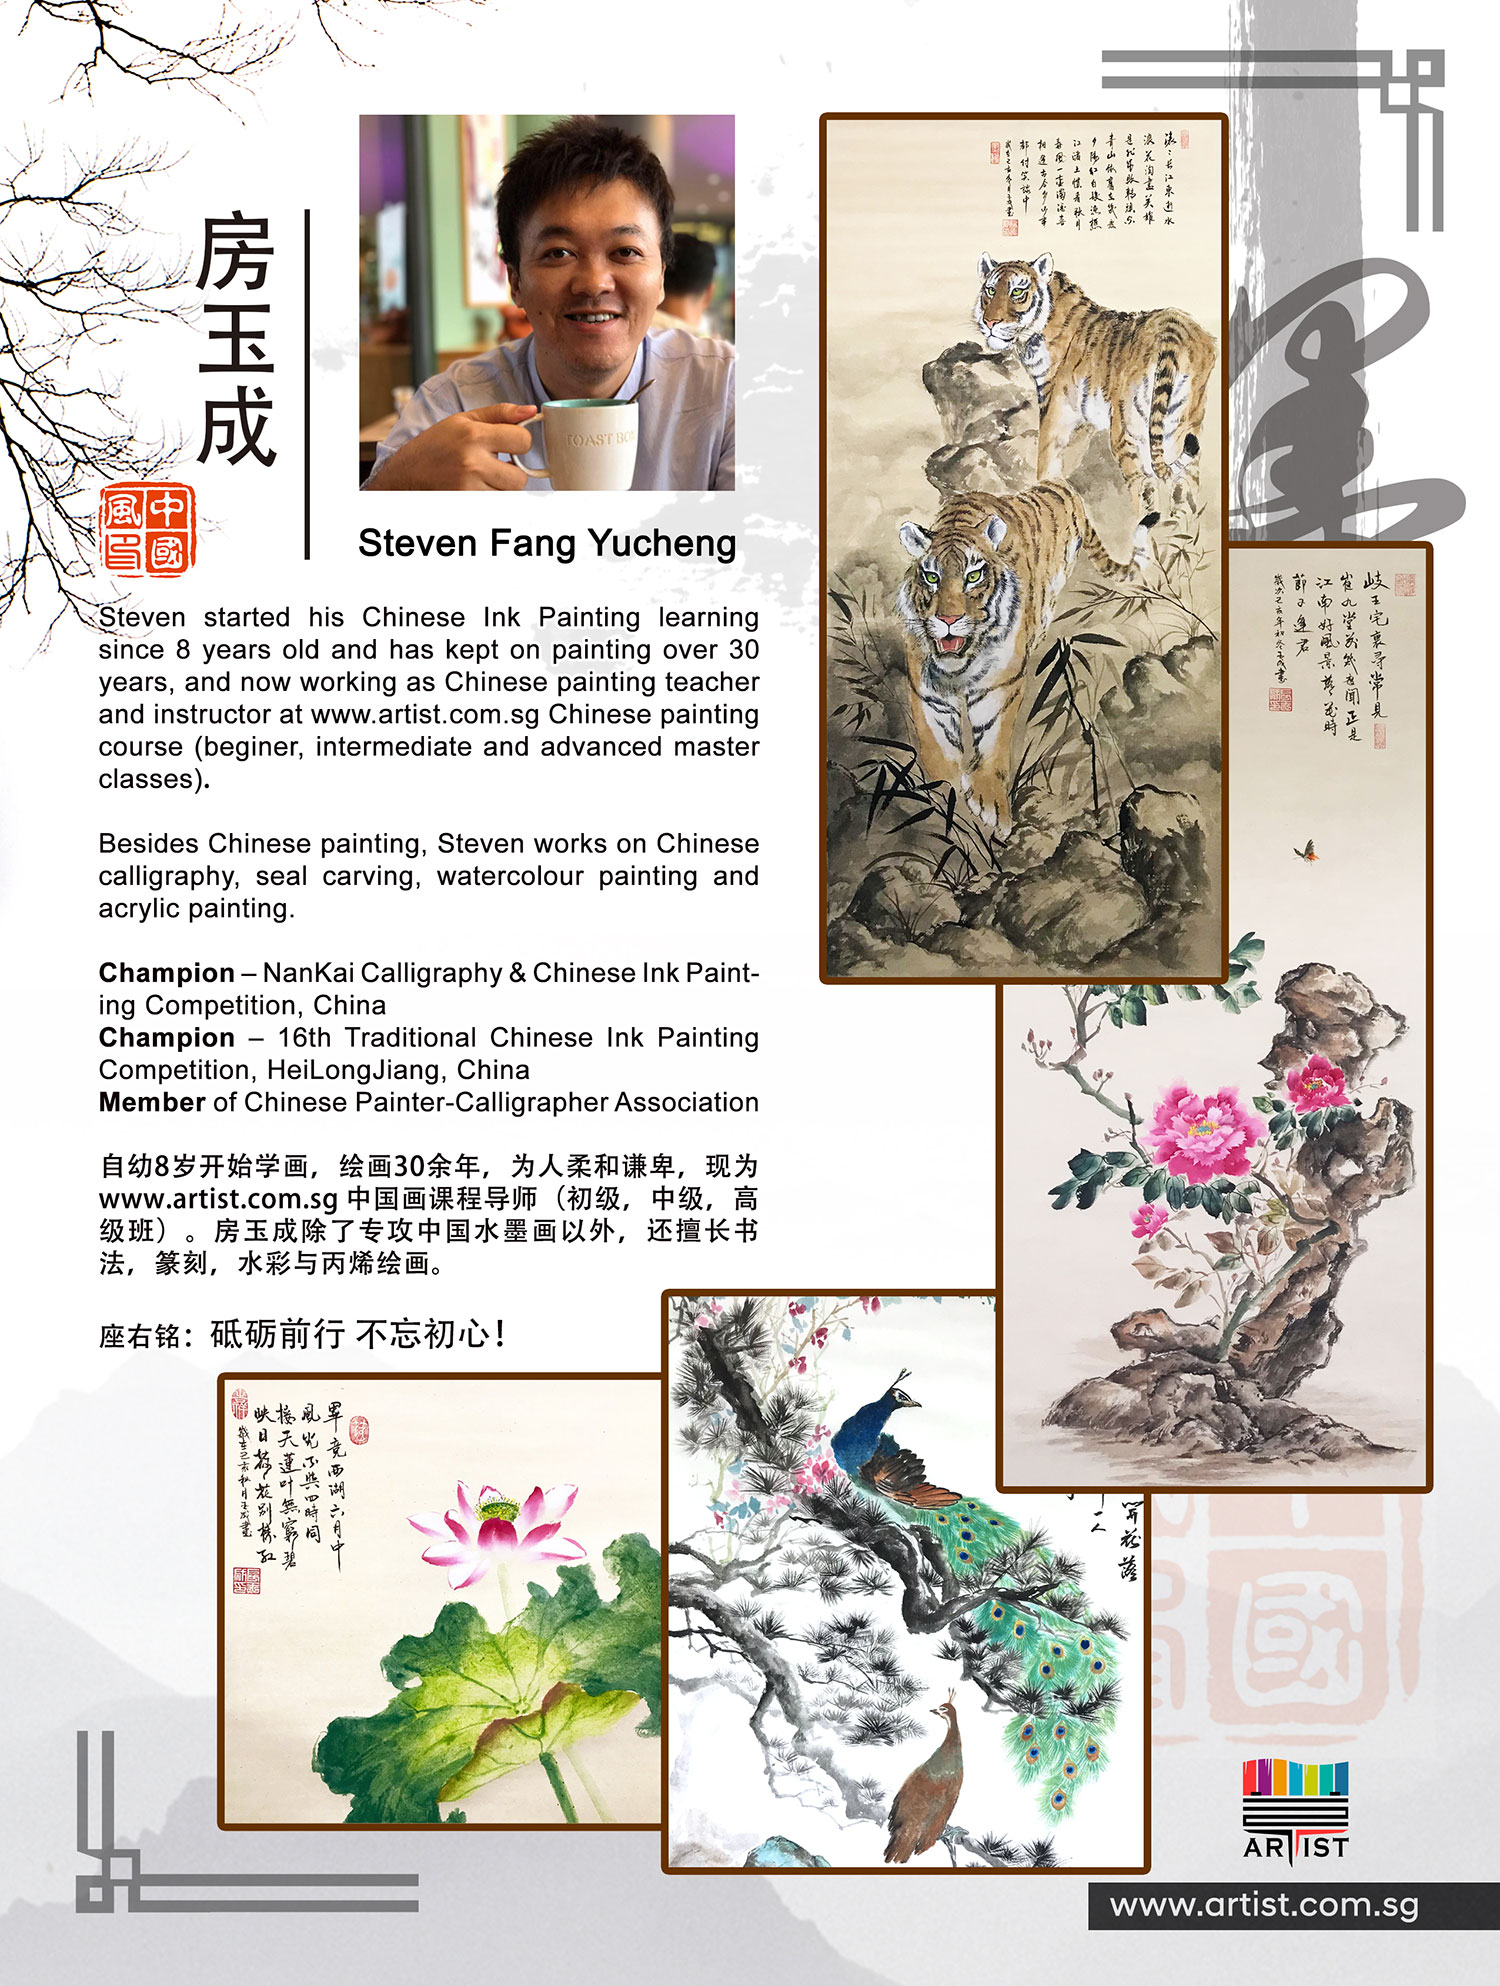 Chinese painting by Steven Fang Yucheng